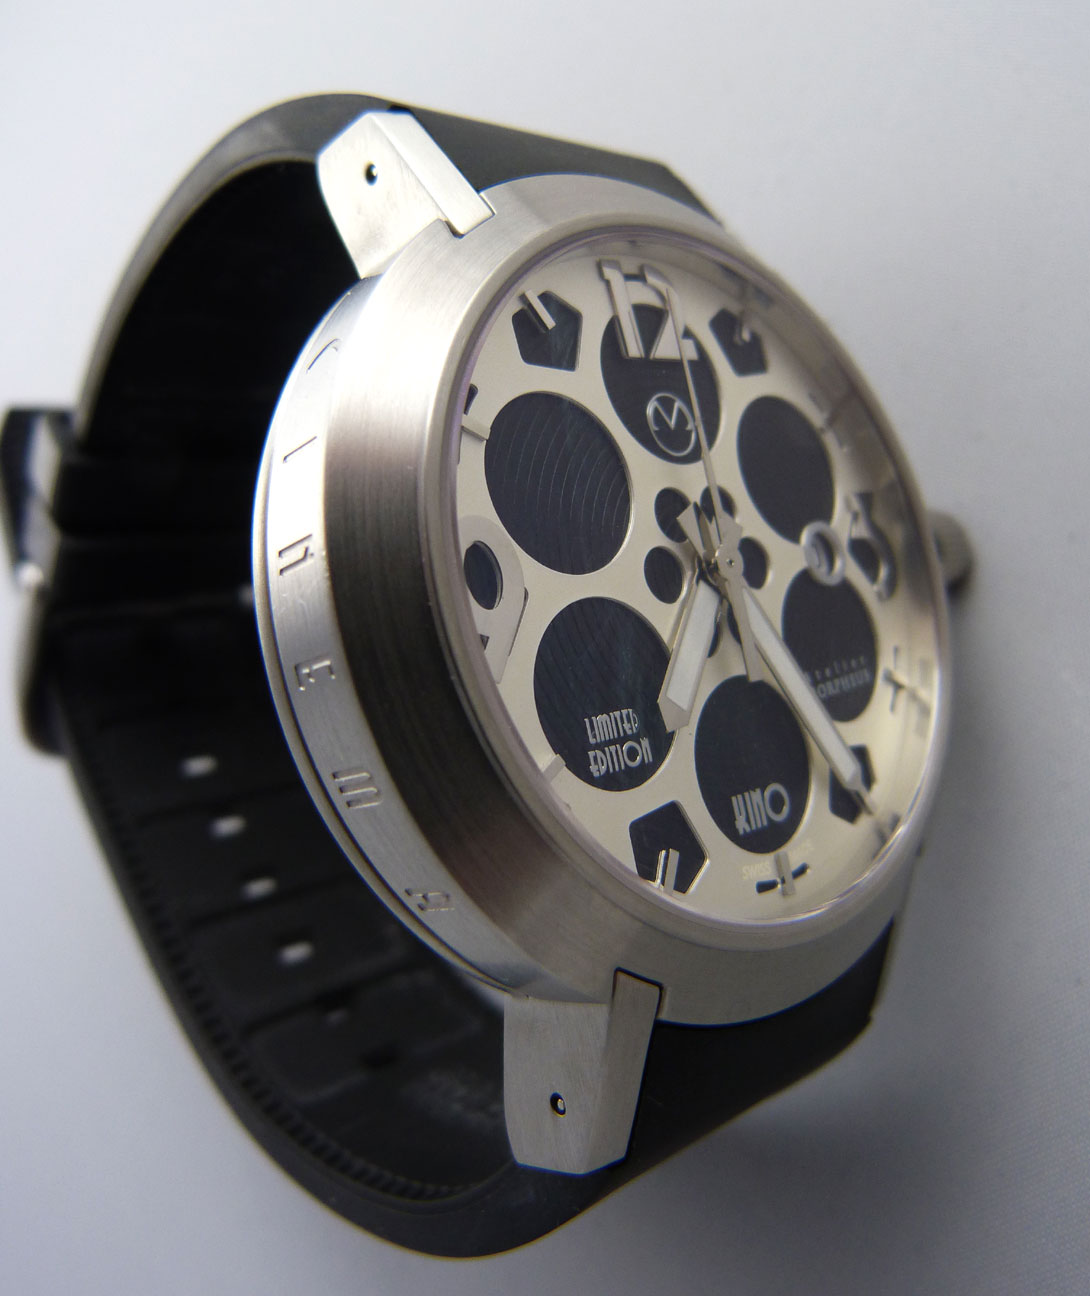 Cinema Watch Swiss Automatic from Morpheus